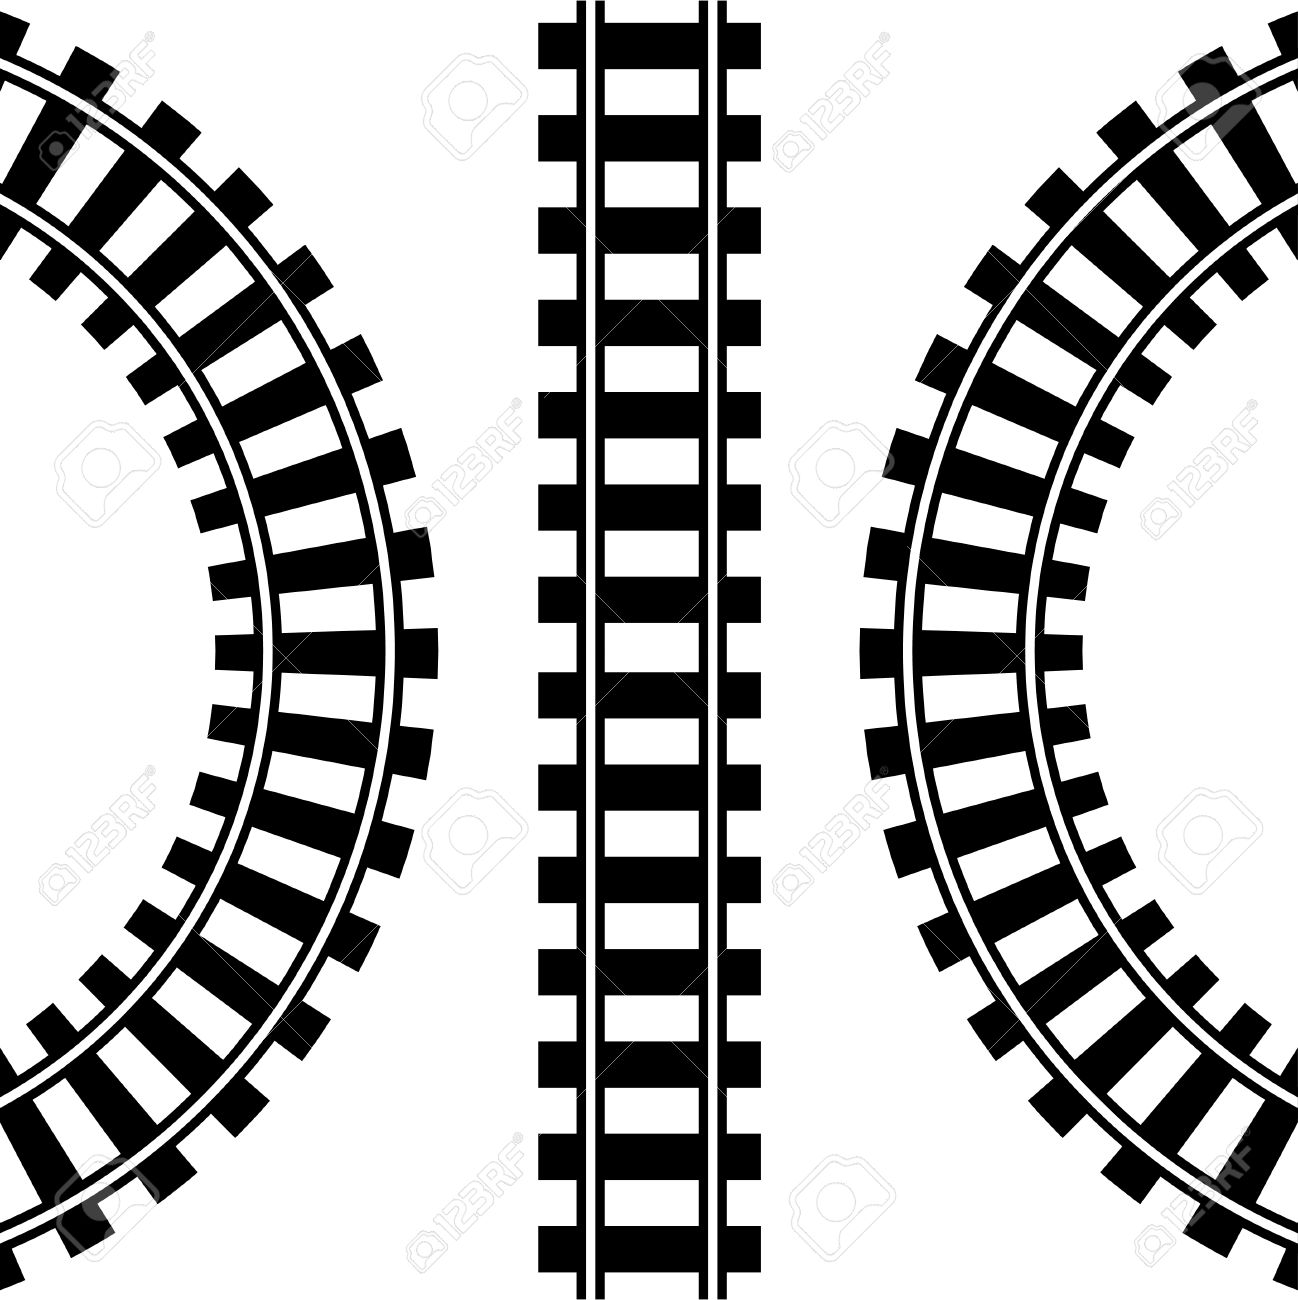 Train Tracks Clipart.